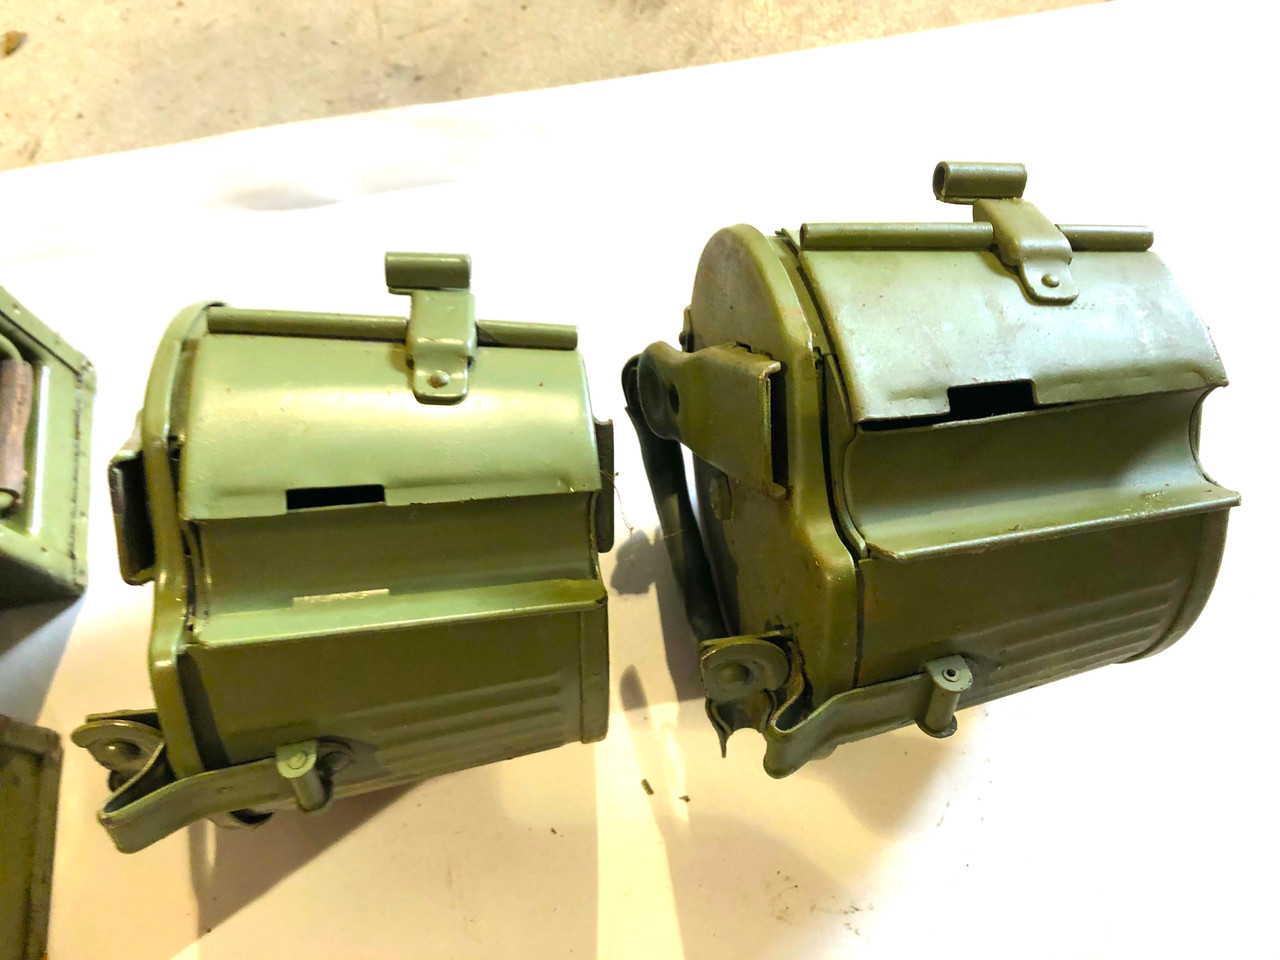 MG34 & 42 Basket Drums, Ammo Cans, & Barrel Carrier Lot 210428-11